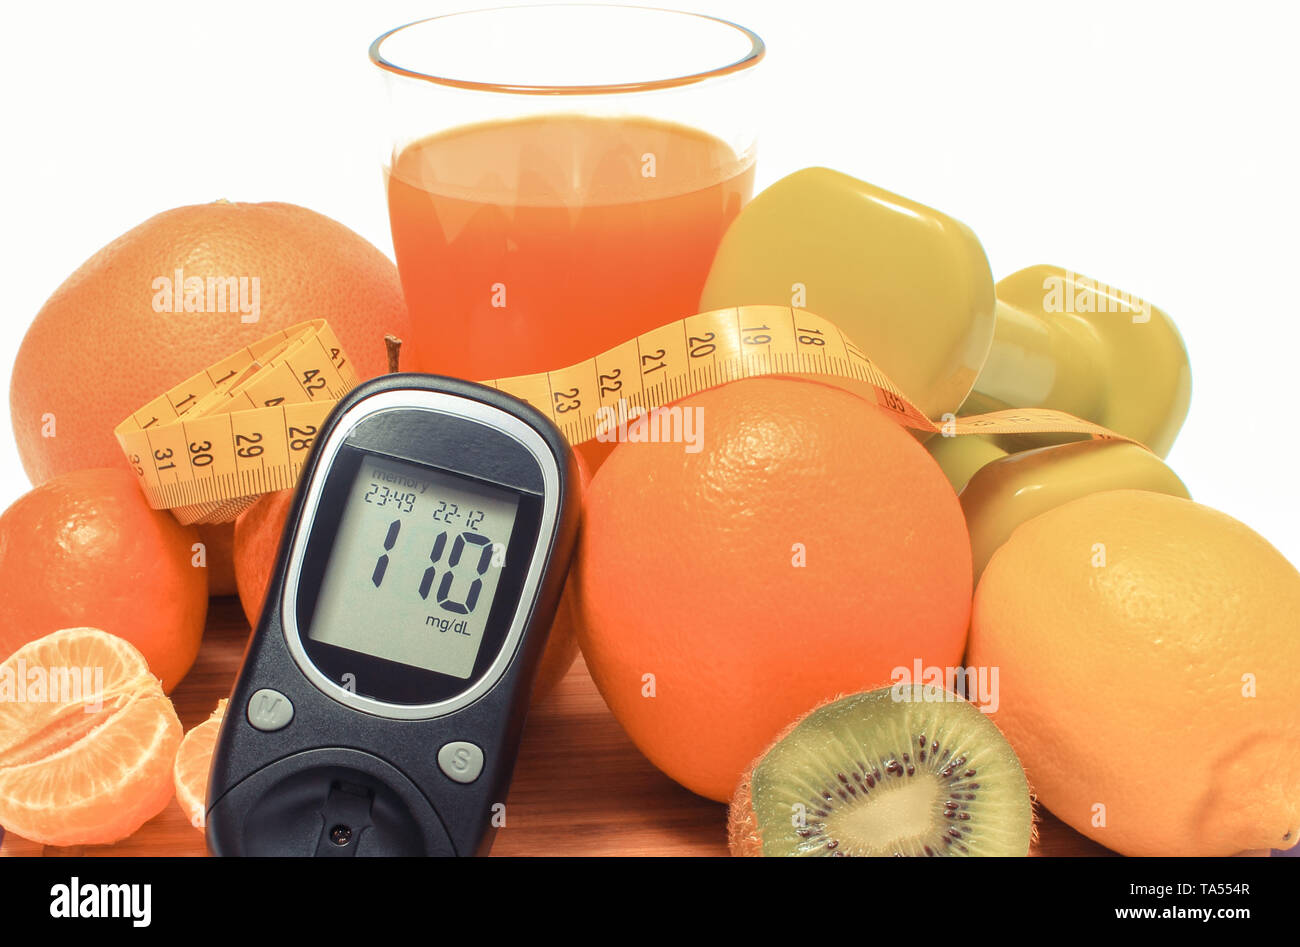 Glucose meter for checking sugar level and fresh ripe natural fruits with tape measure, concept of diabetes, slimming and healthy nutrition - Stock Image